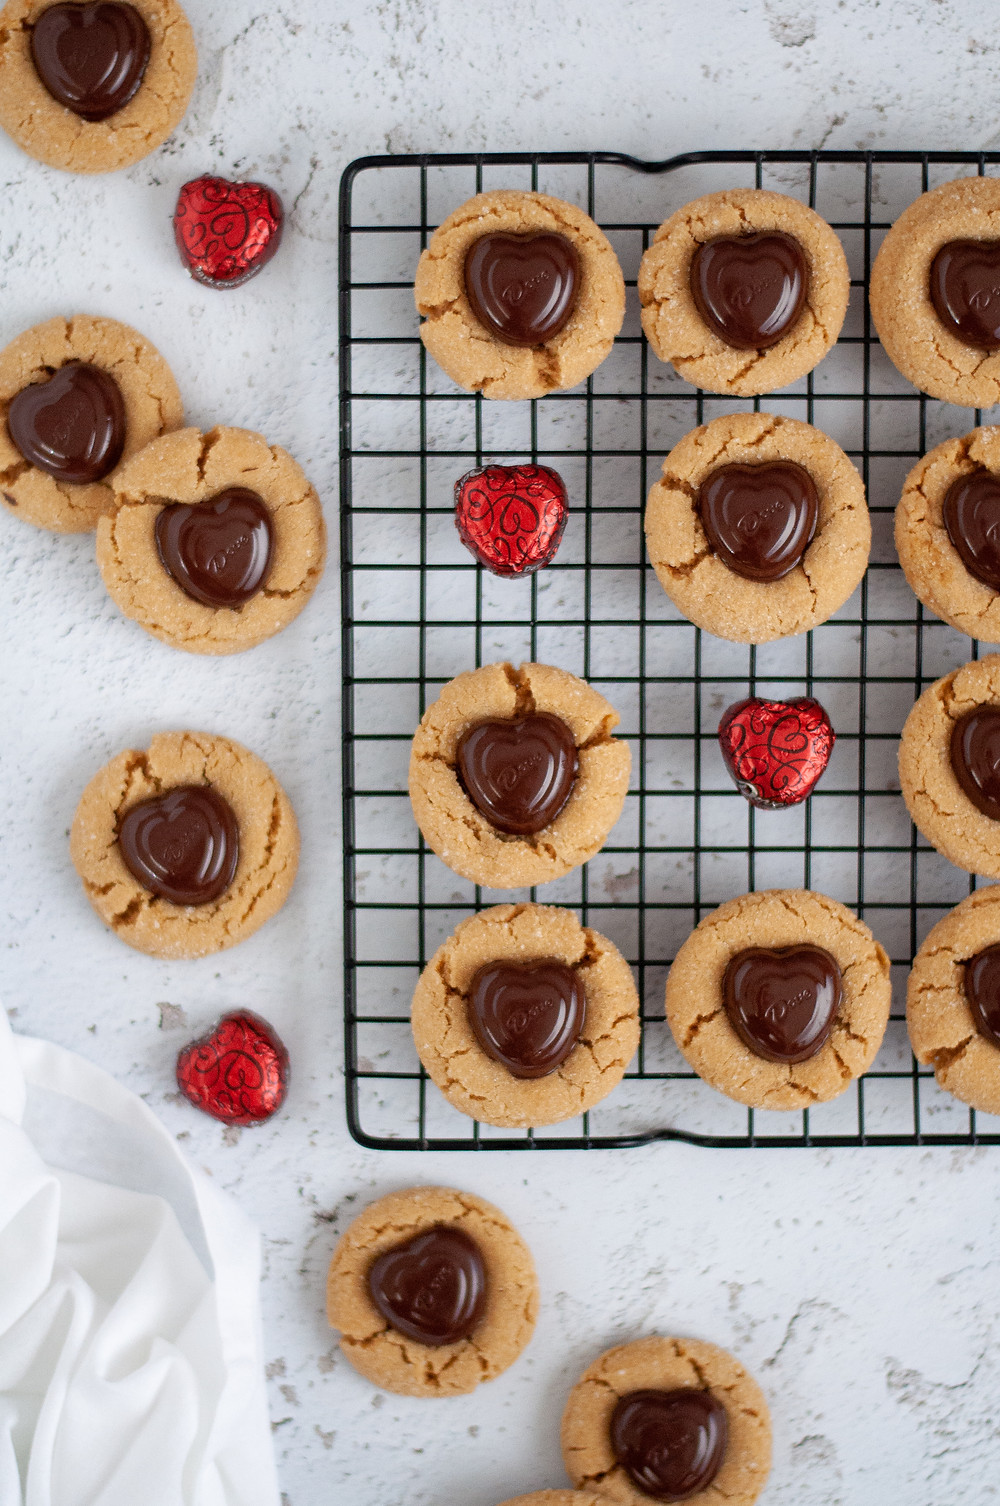 Another top down view of these peanut butter hershey kiss cookies both on and off of the wire cooling rack